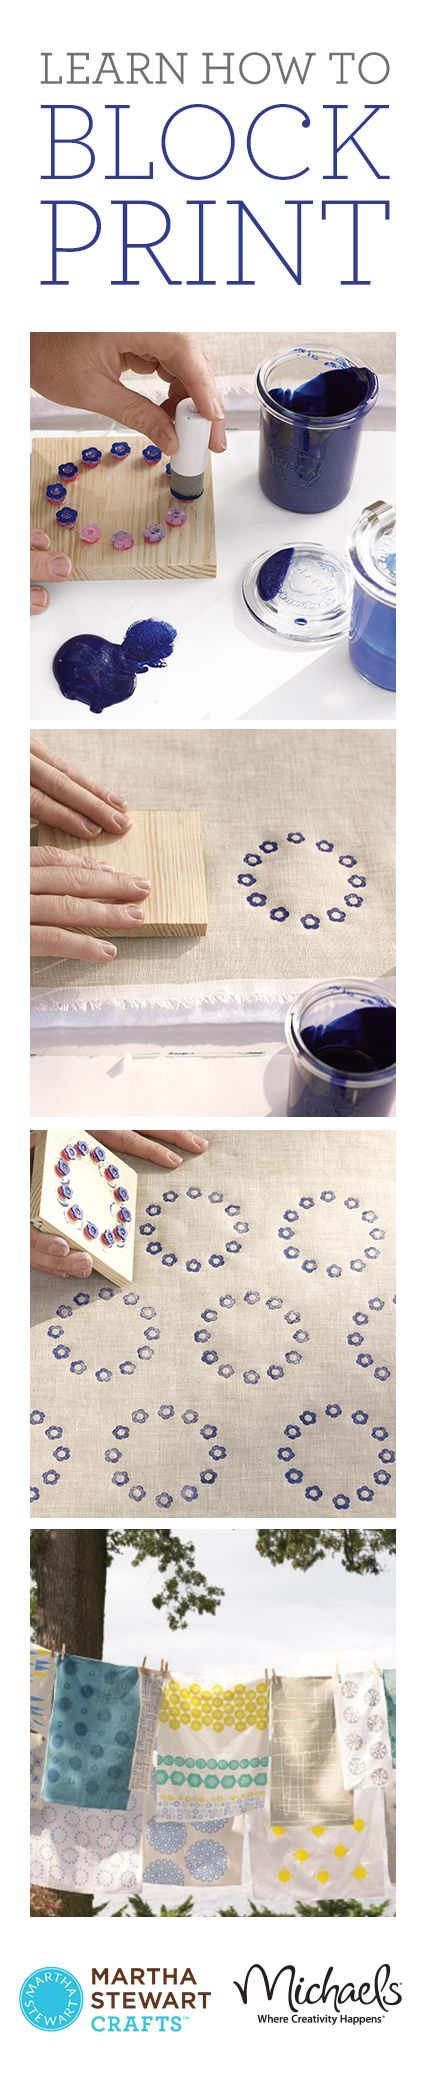 block-printing using everyday objects